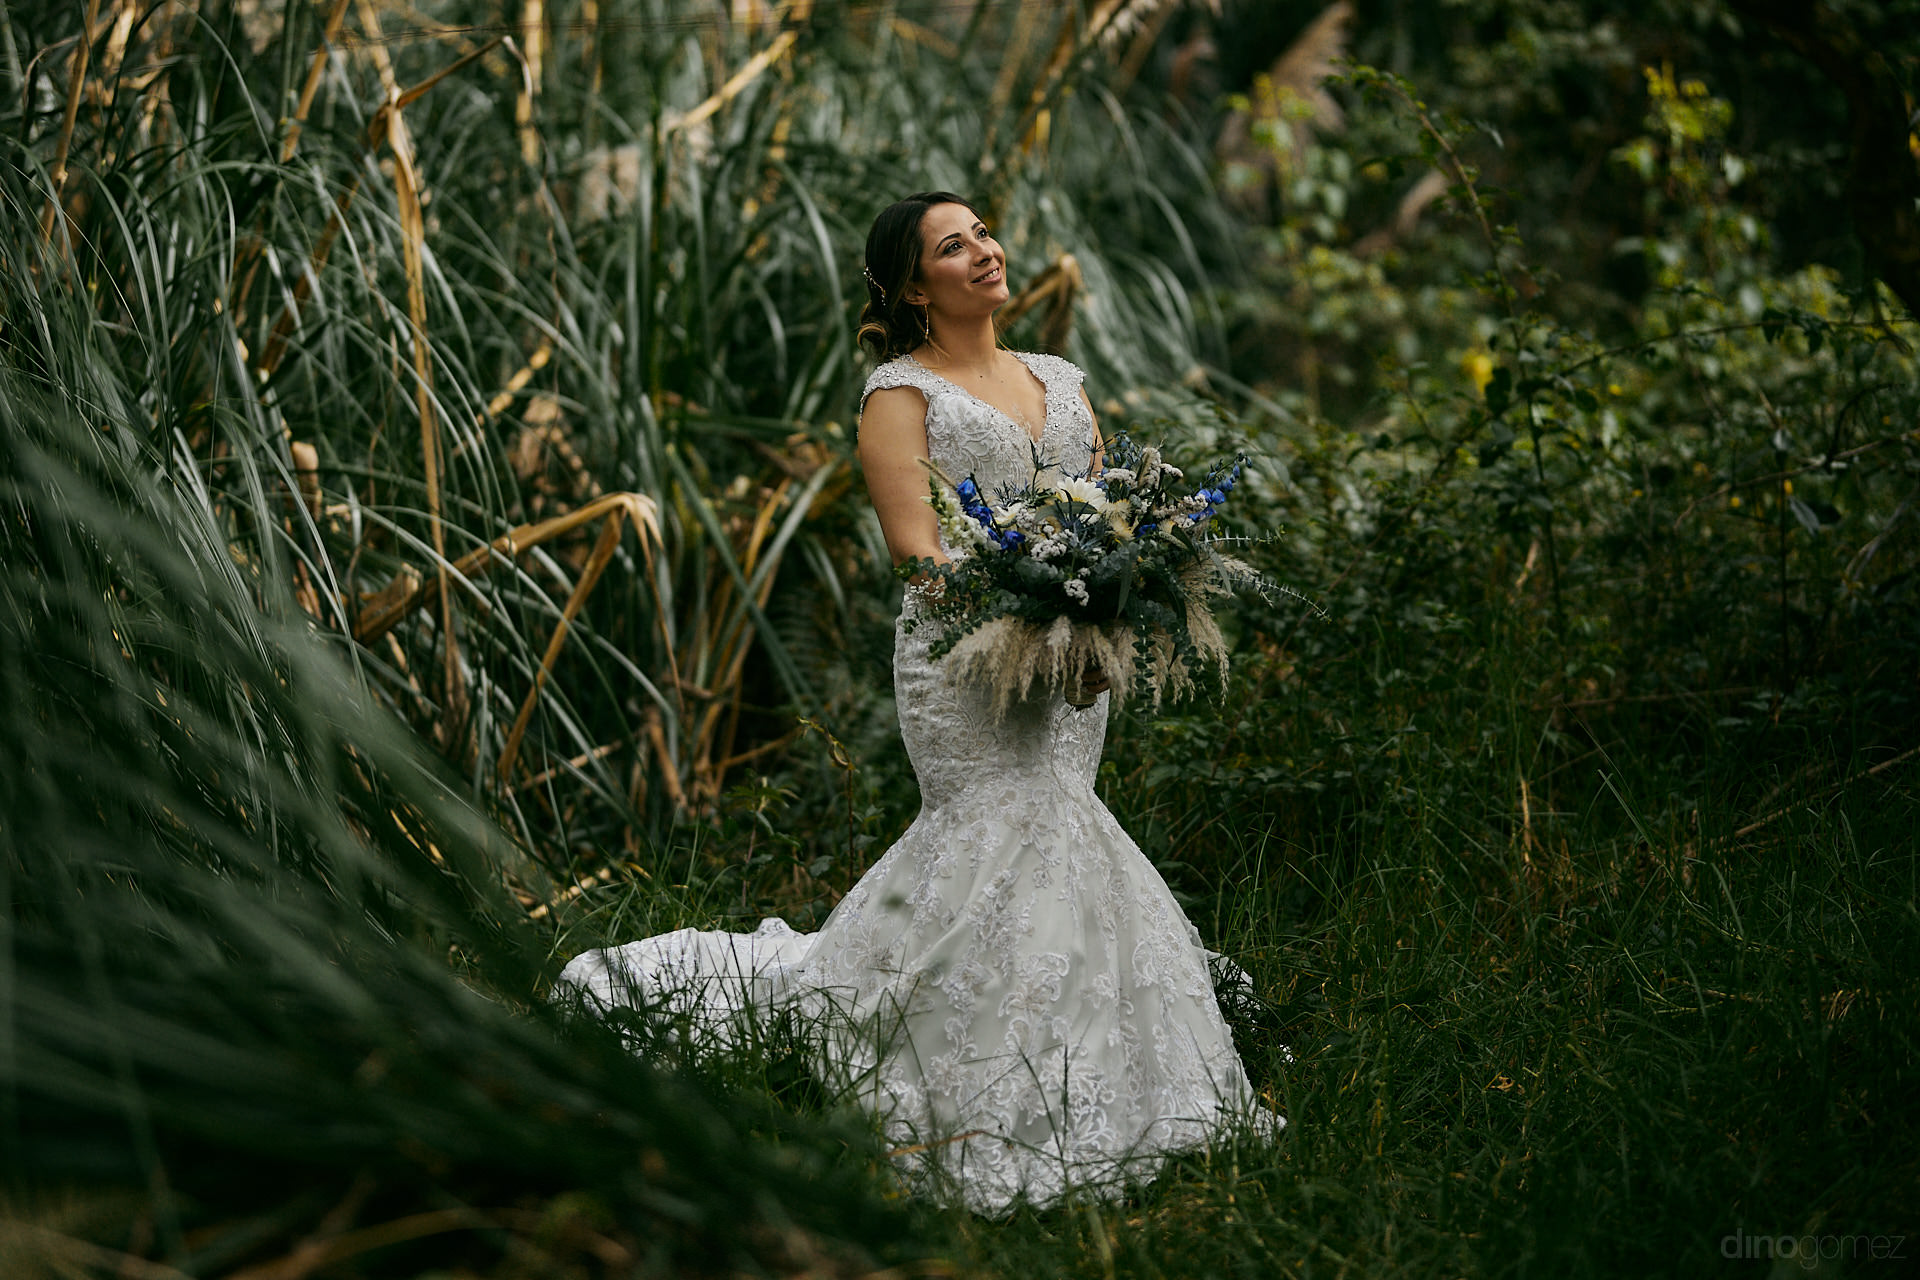 As A Photographer In San Miguel De Allende For Over 15 Years, I Examine Each Wedding As A Work Of Art. My Goal Is To Render Your Most Cherished Memories Into Photographs That You Can Treasure Forever. I Love What I Do!